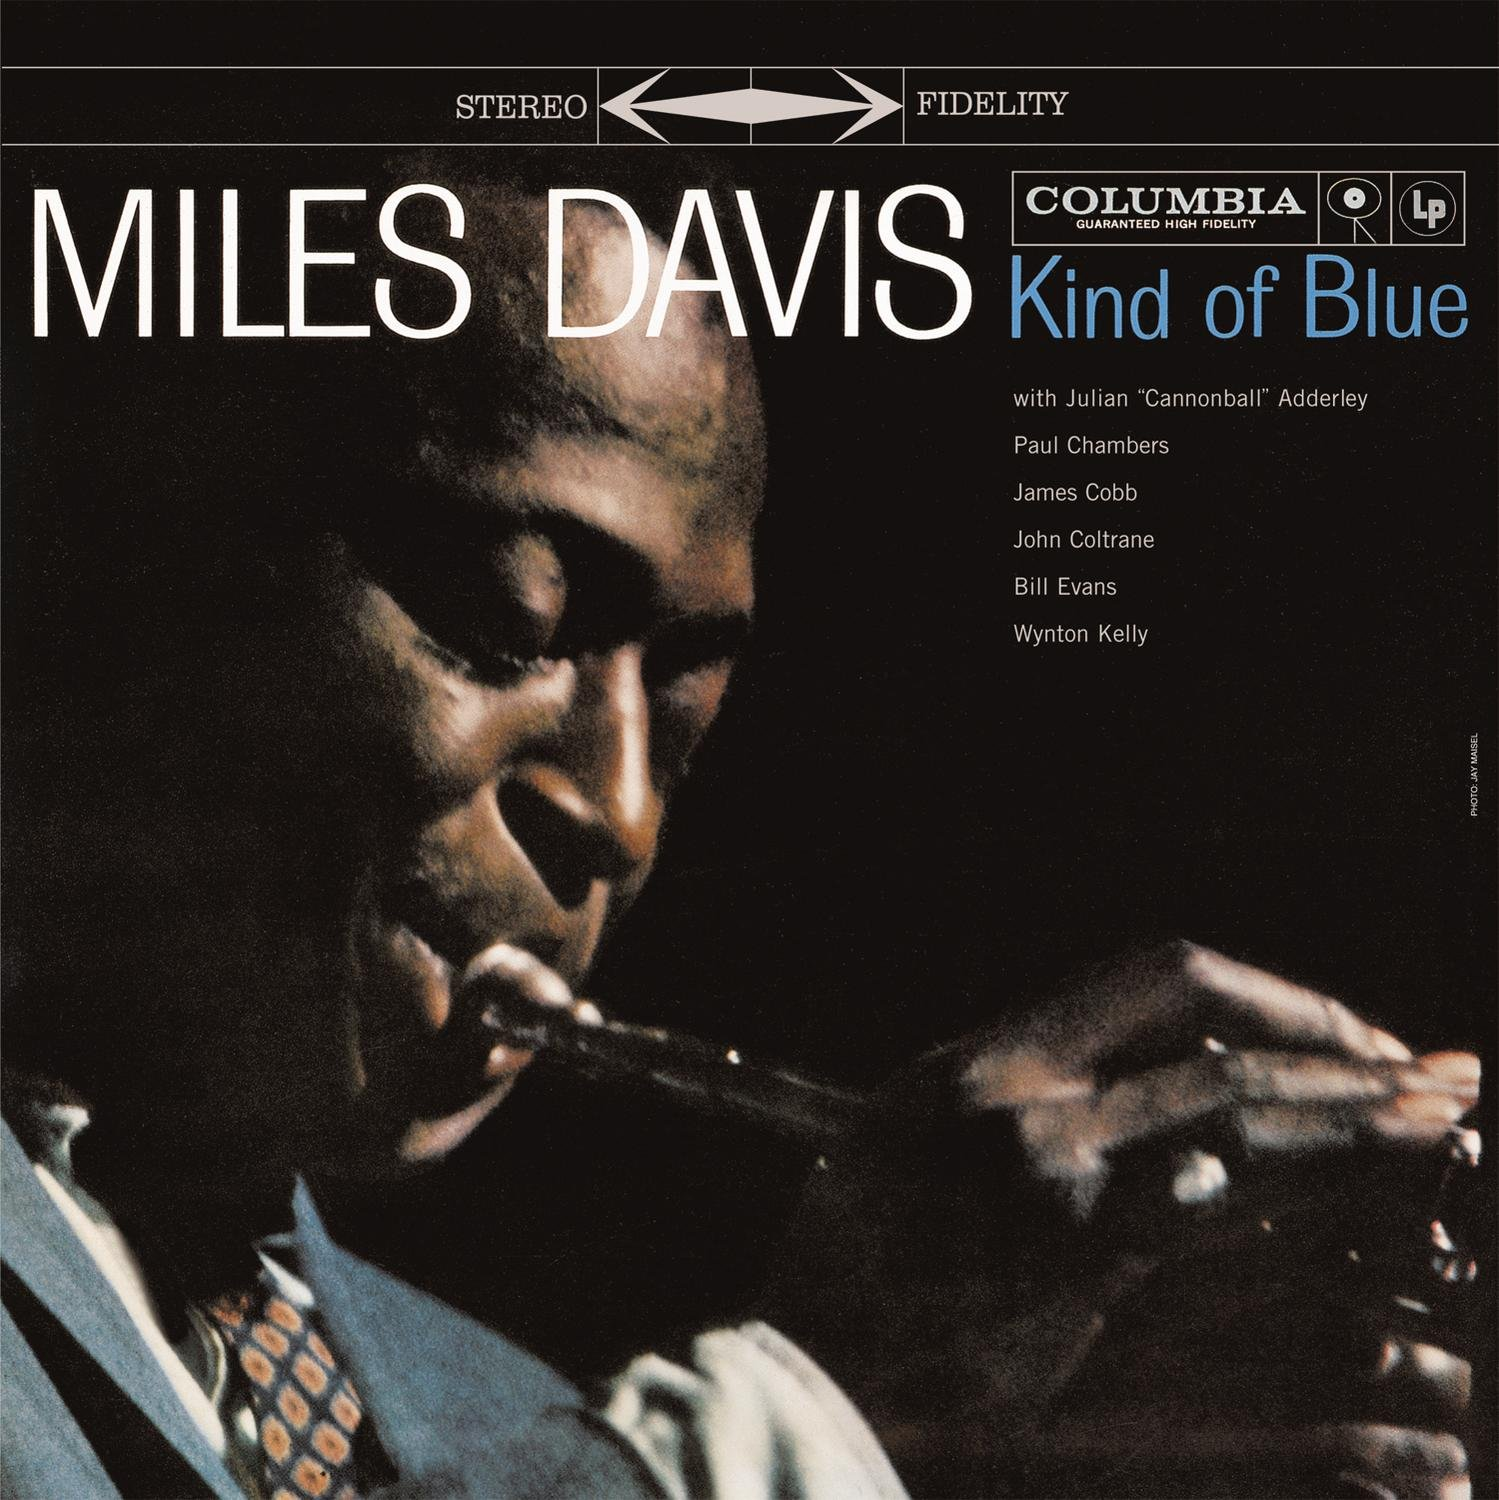 Miles Davis - Kind Of Blue (Vinyl) - Amazon.com Music